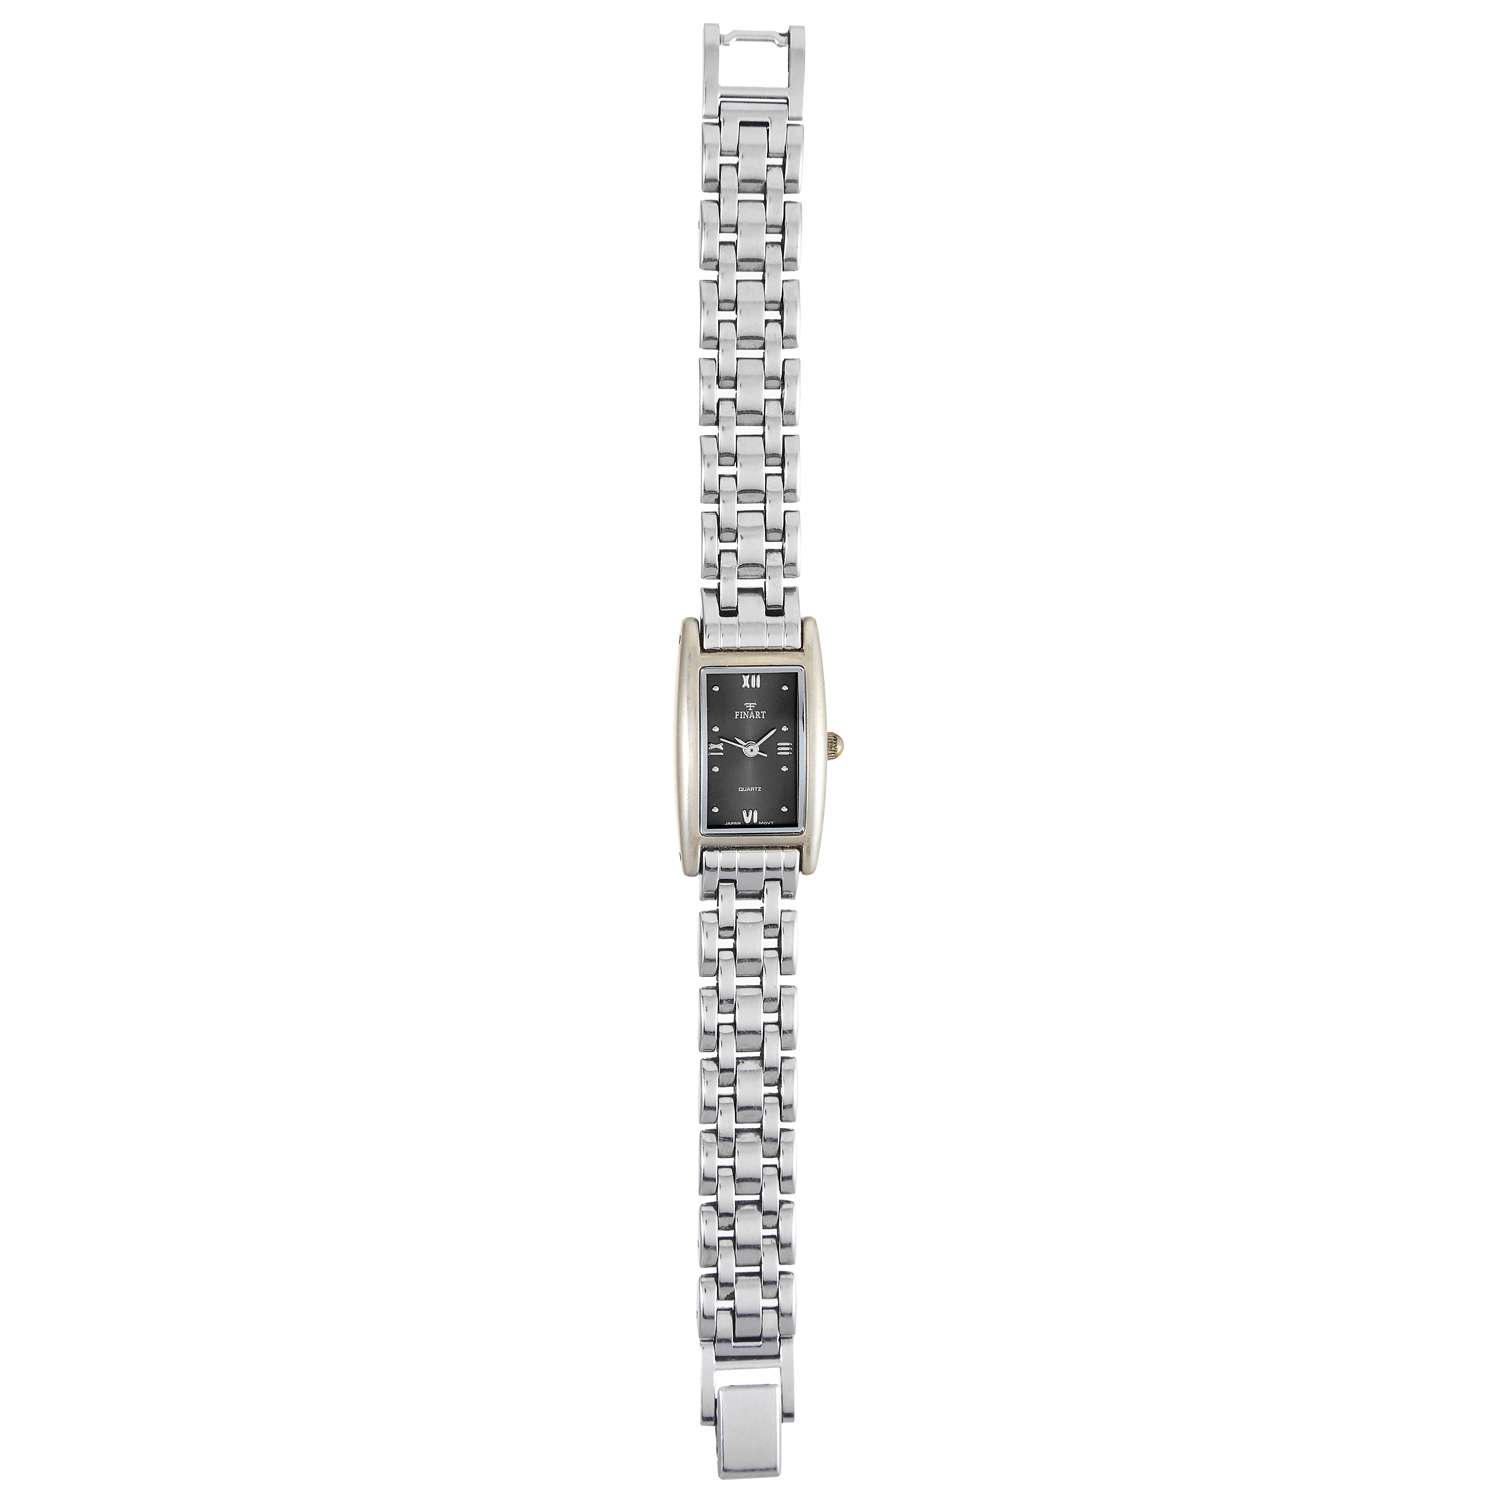 Los 421 - A LADIES WRISTWATCH, FINART in stainless steel, 17cm, 37.5g.